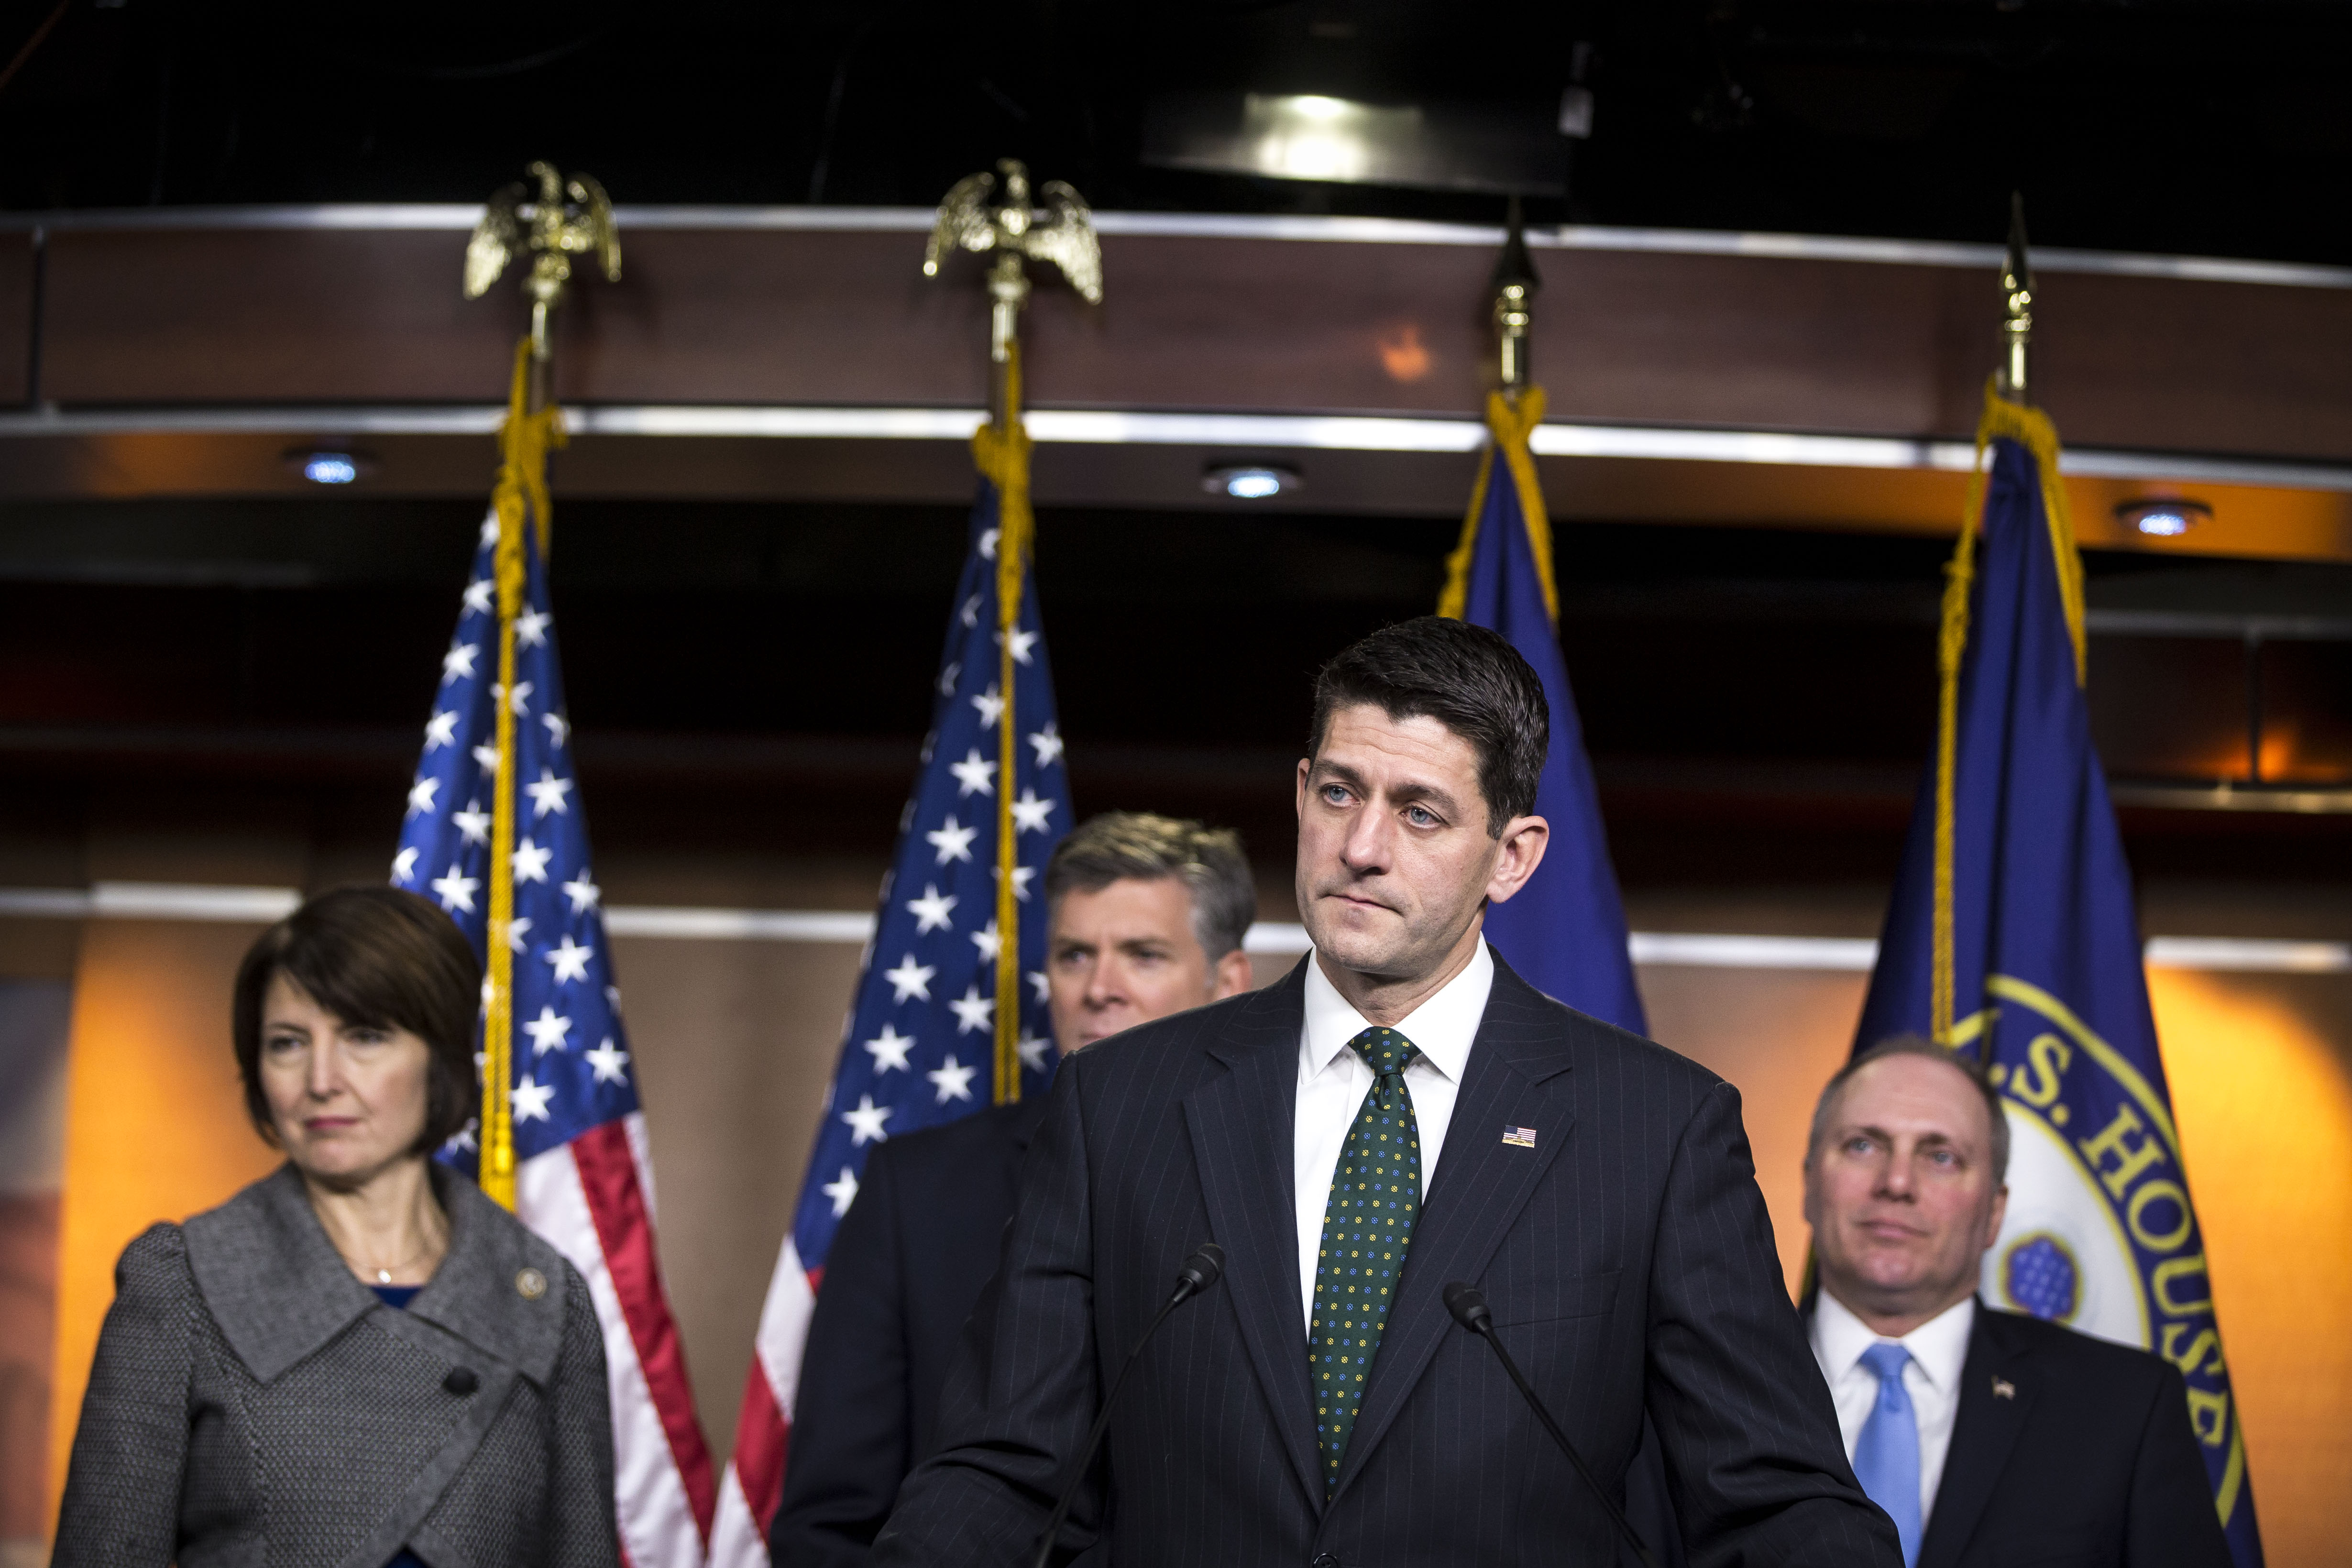 U.S. Speaker of the House Paul Ryan (R-WI) speaks in front of Rep. Cathy McMorris Rodgers (R-WA), Rep. Darin LaHood (R-IL), and House Majority Whip Steve Scalise (R-LA) during a news conference on Capitol Hill December 12, 2017 in Washington, DC.